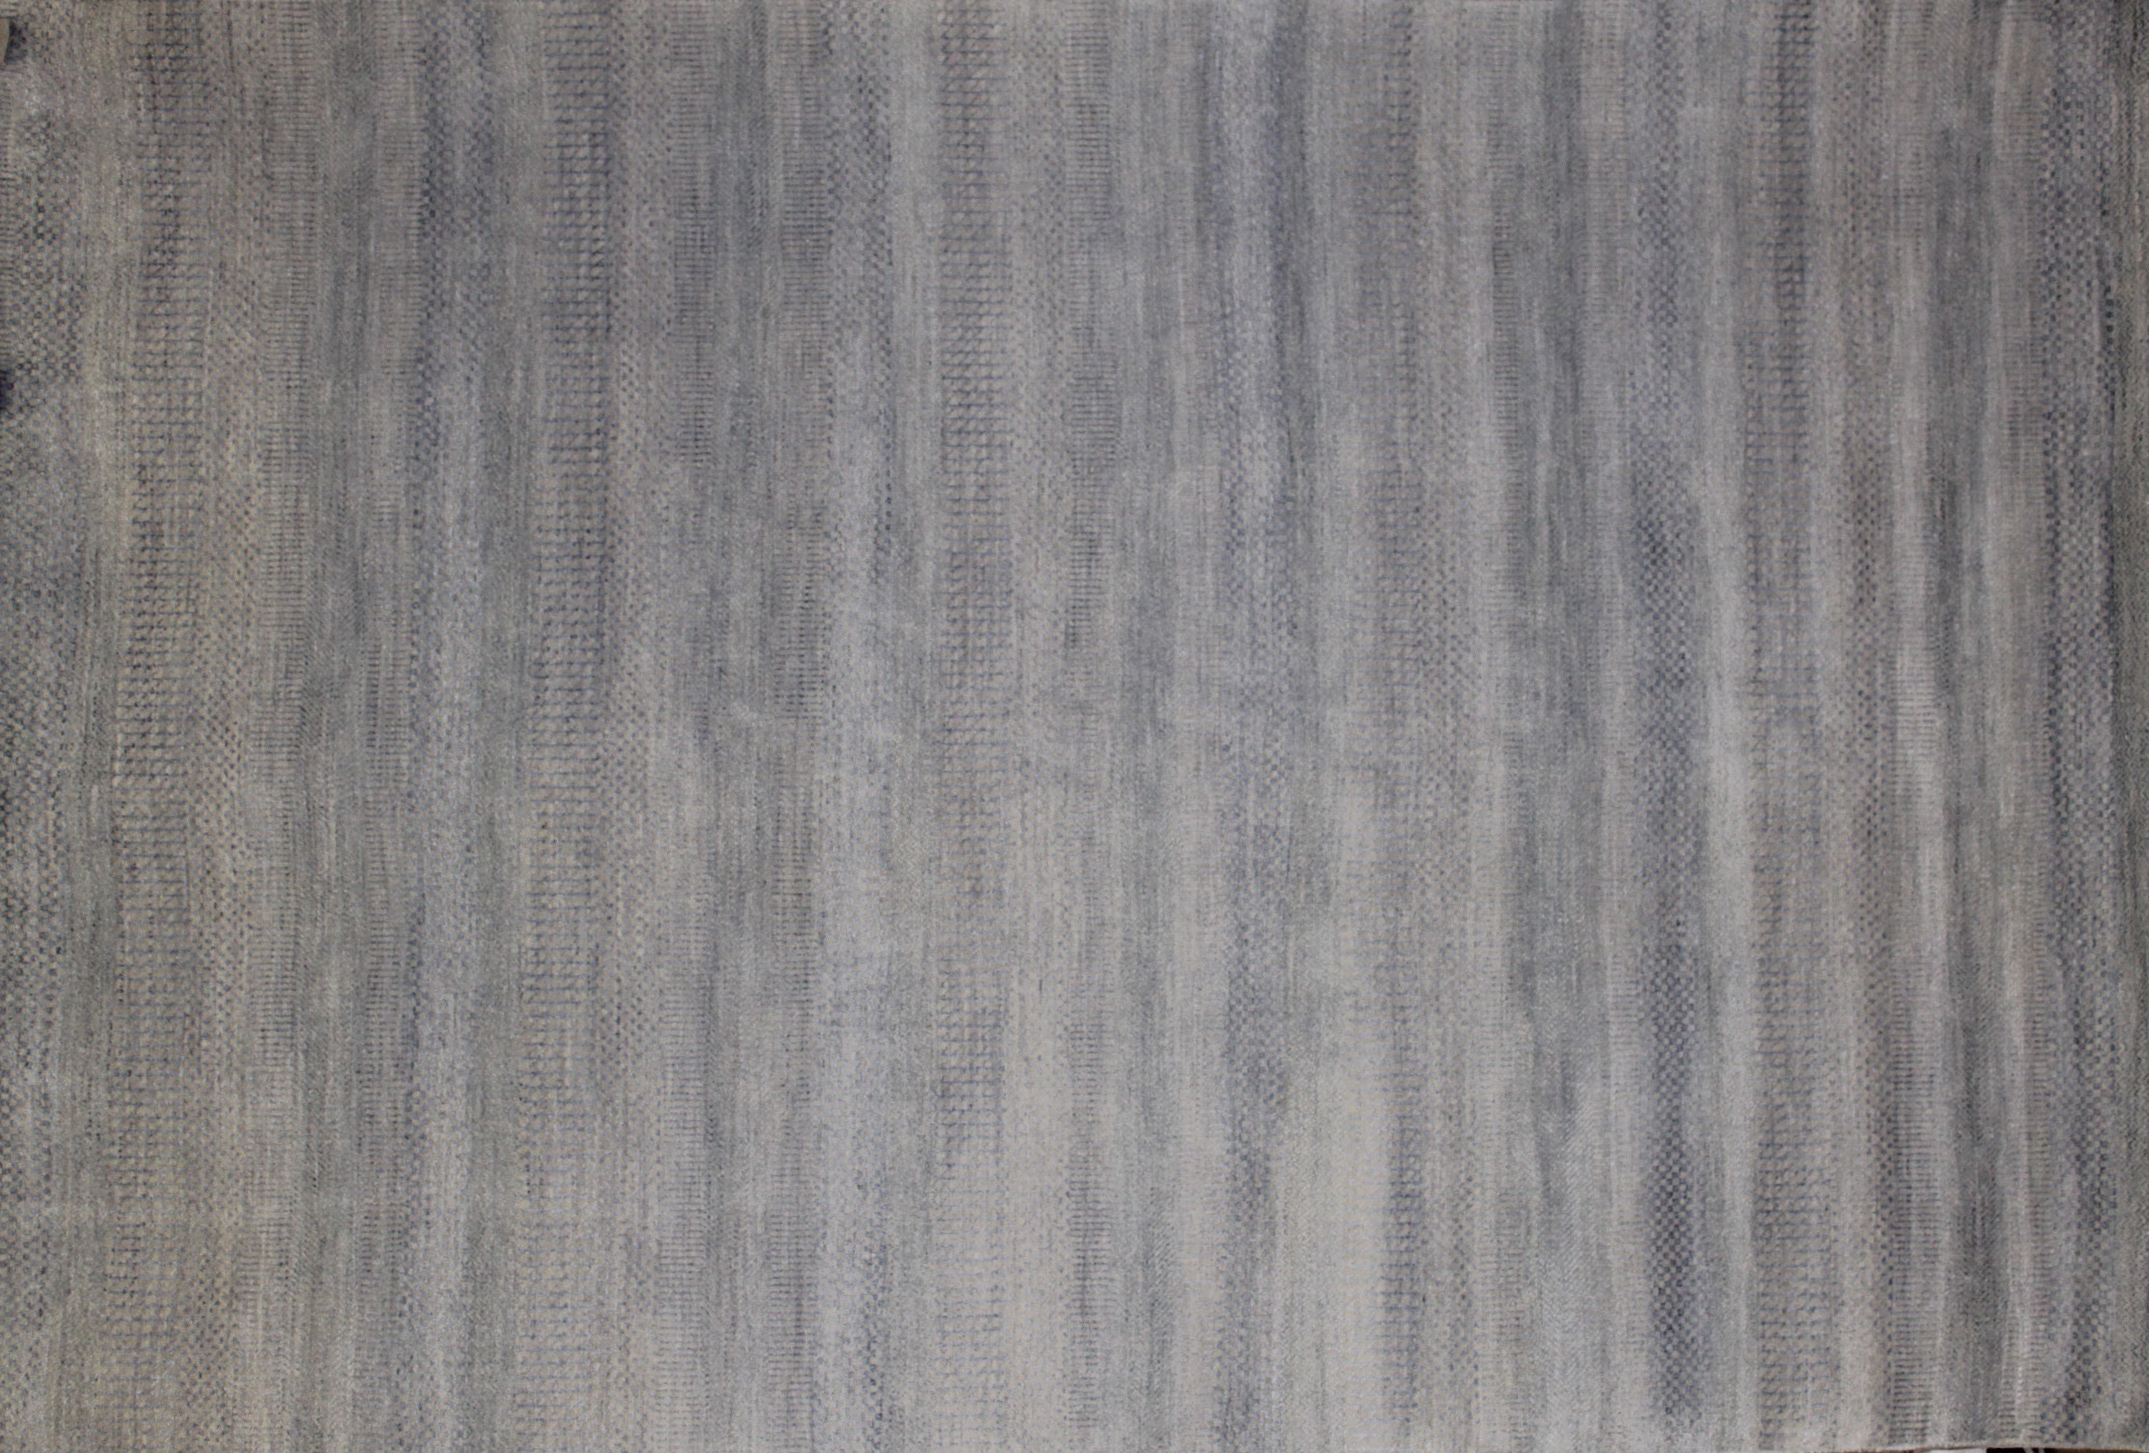 6x9 Contemporary Hand Knotted Wool Area Rug - MR022101